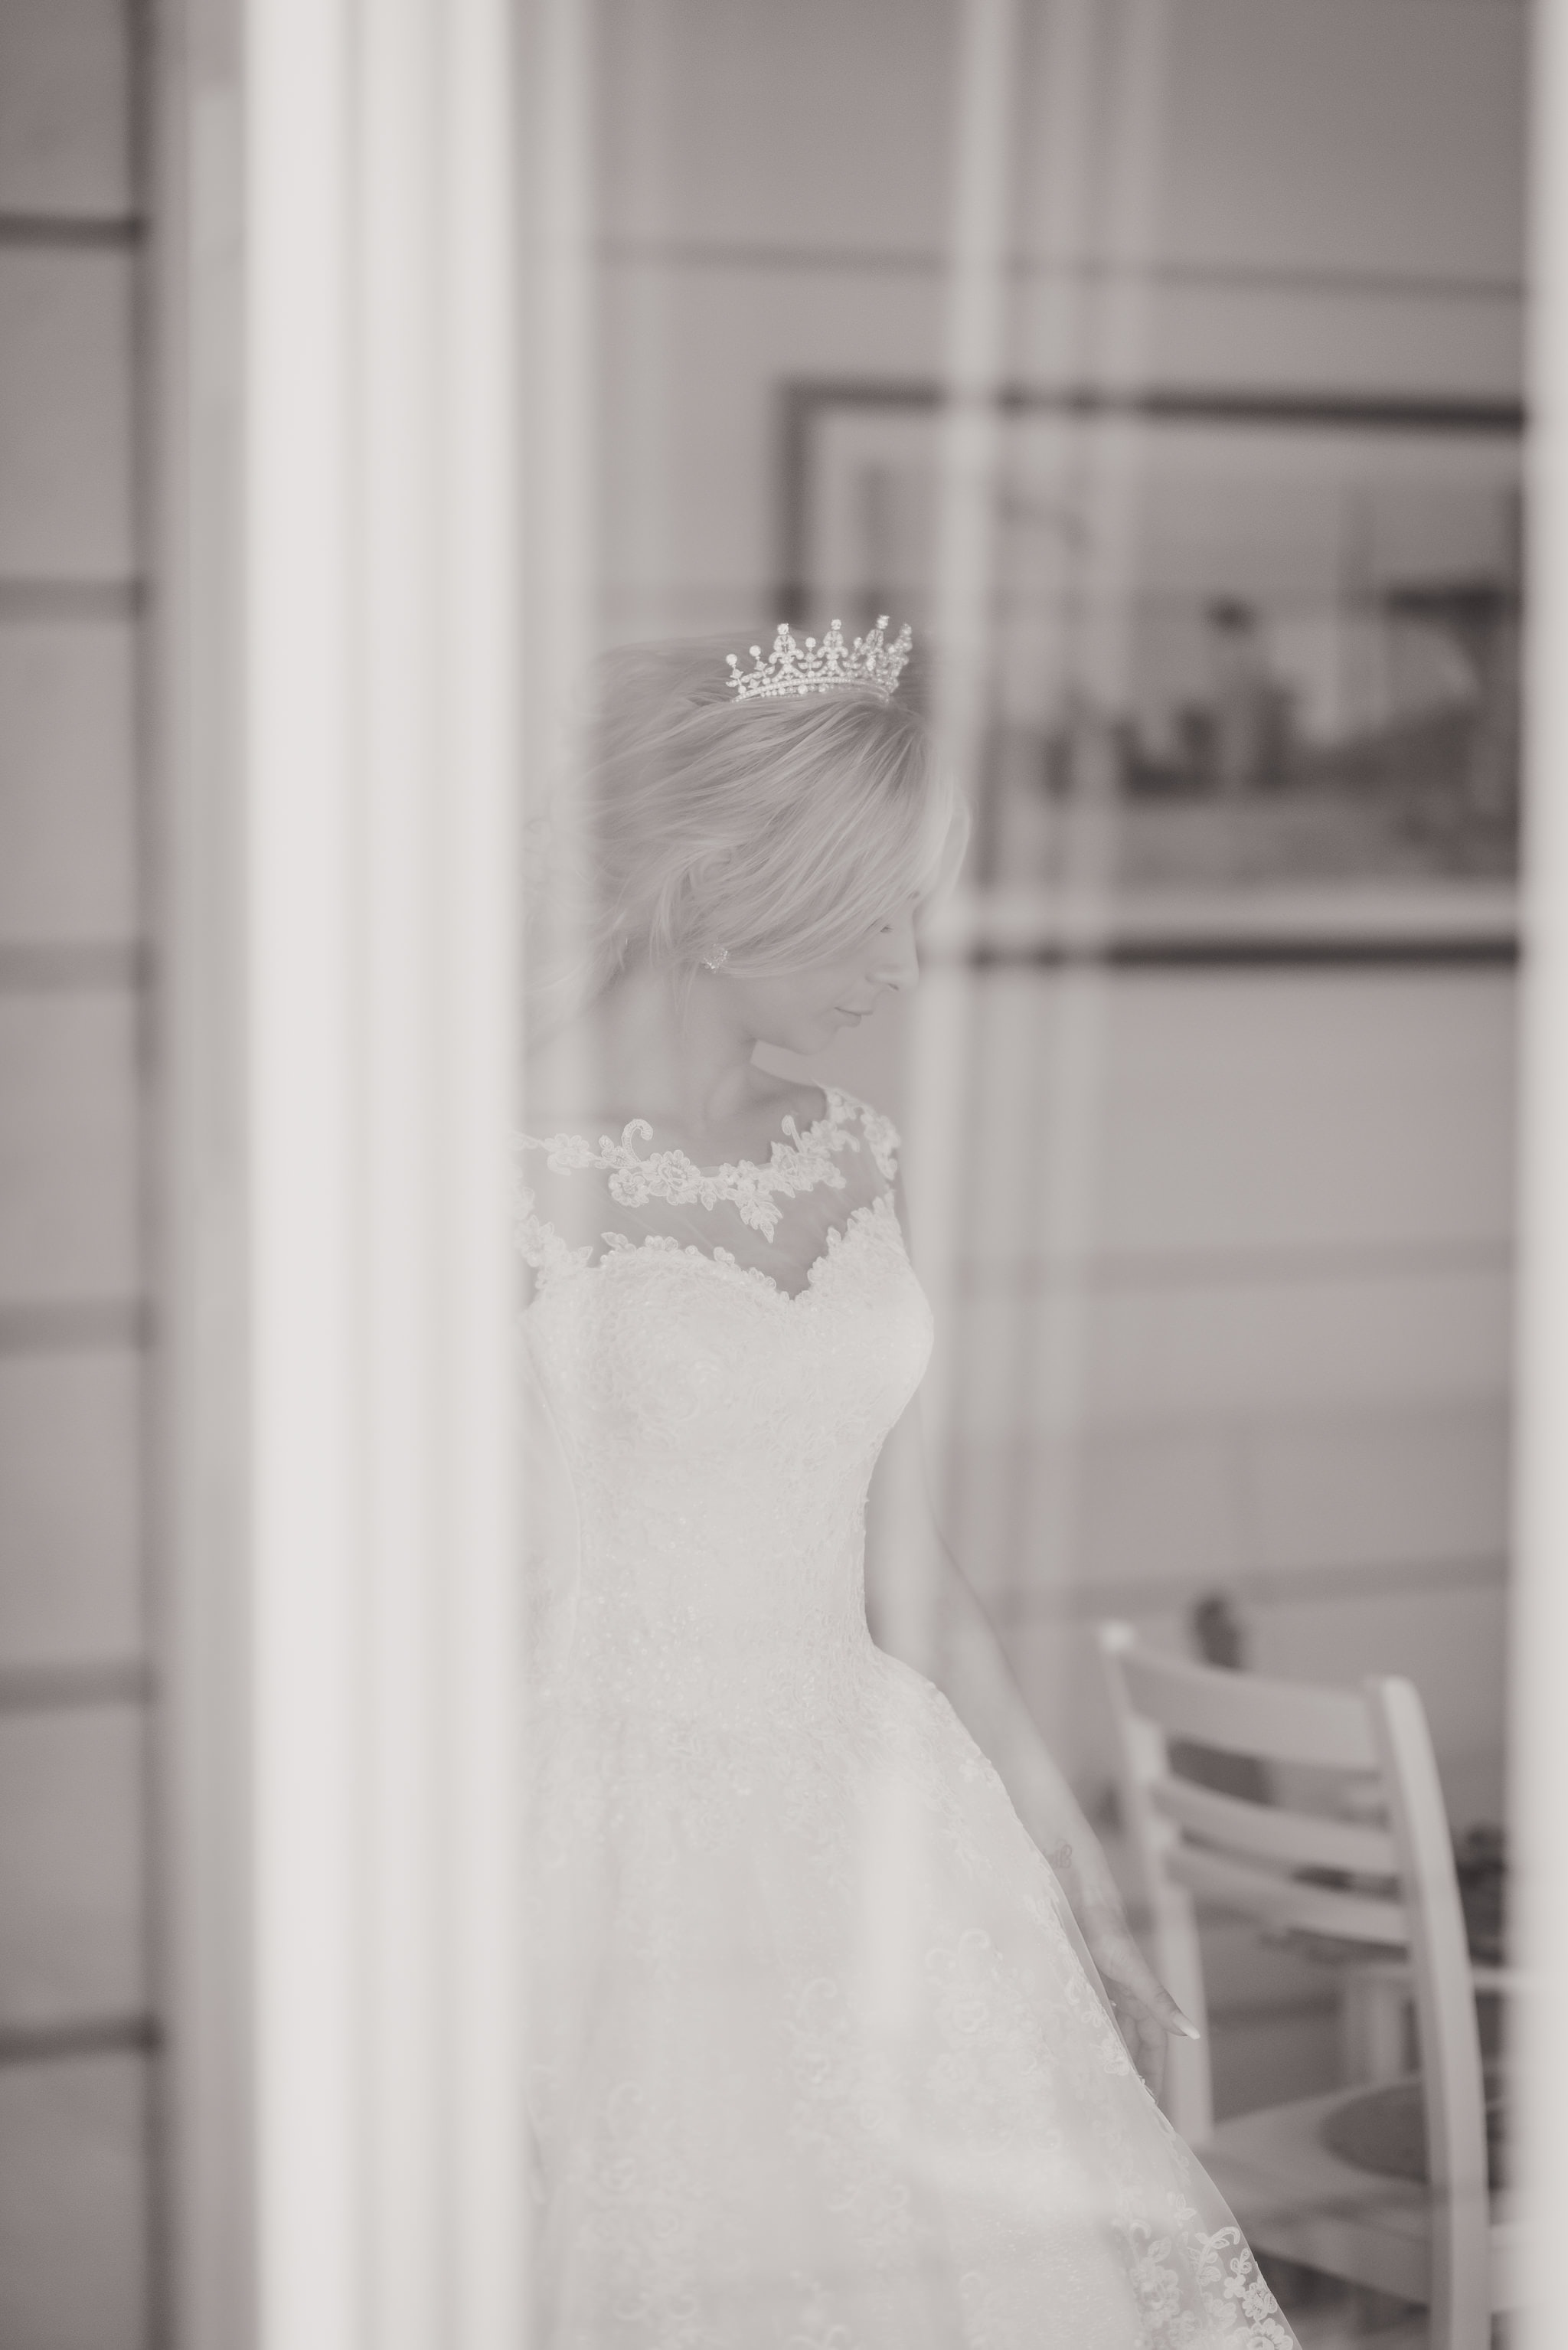 A woman in her wedding dress.